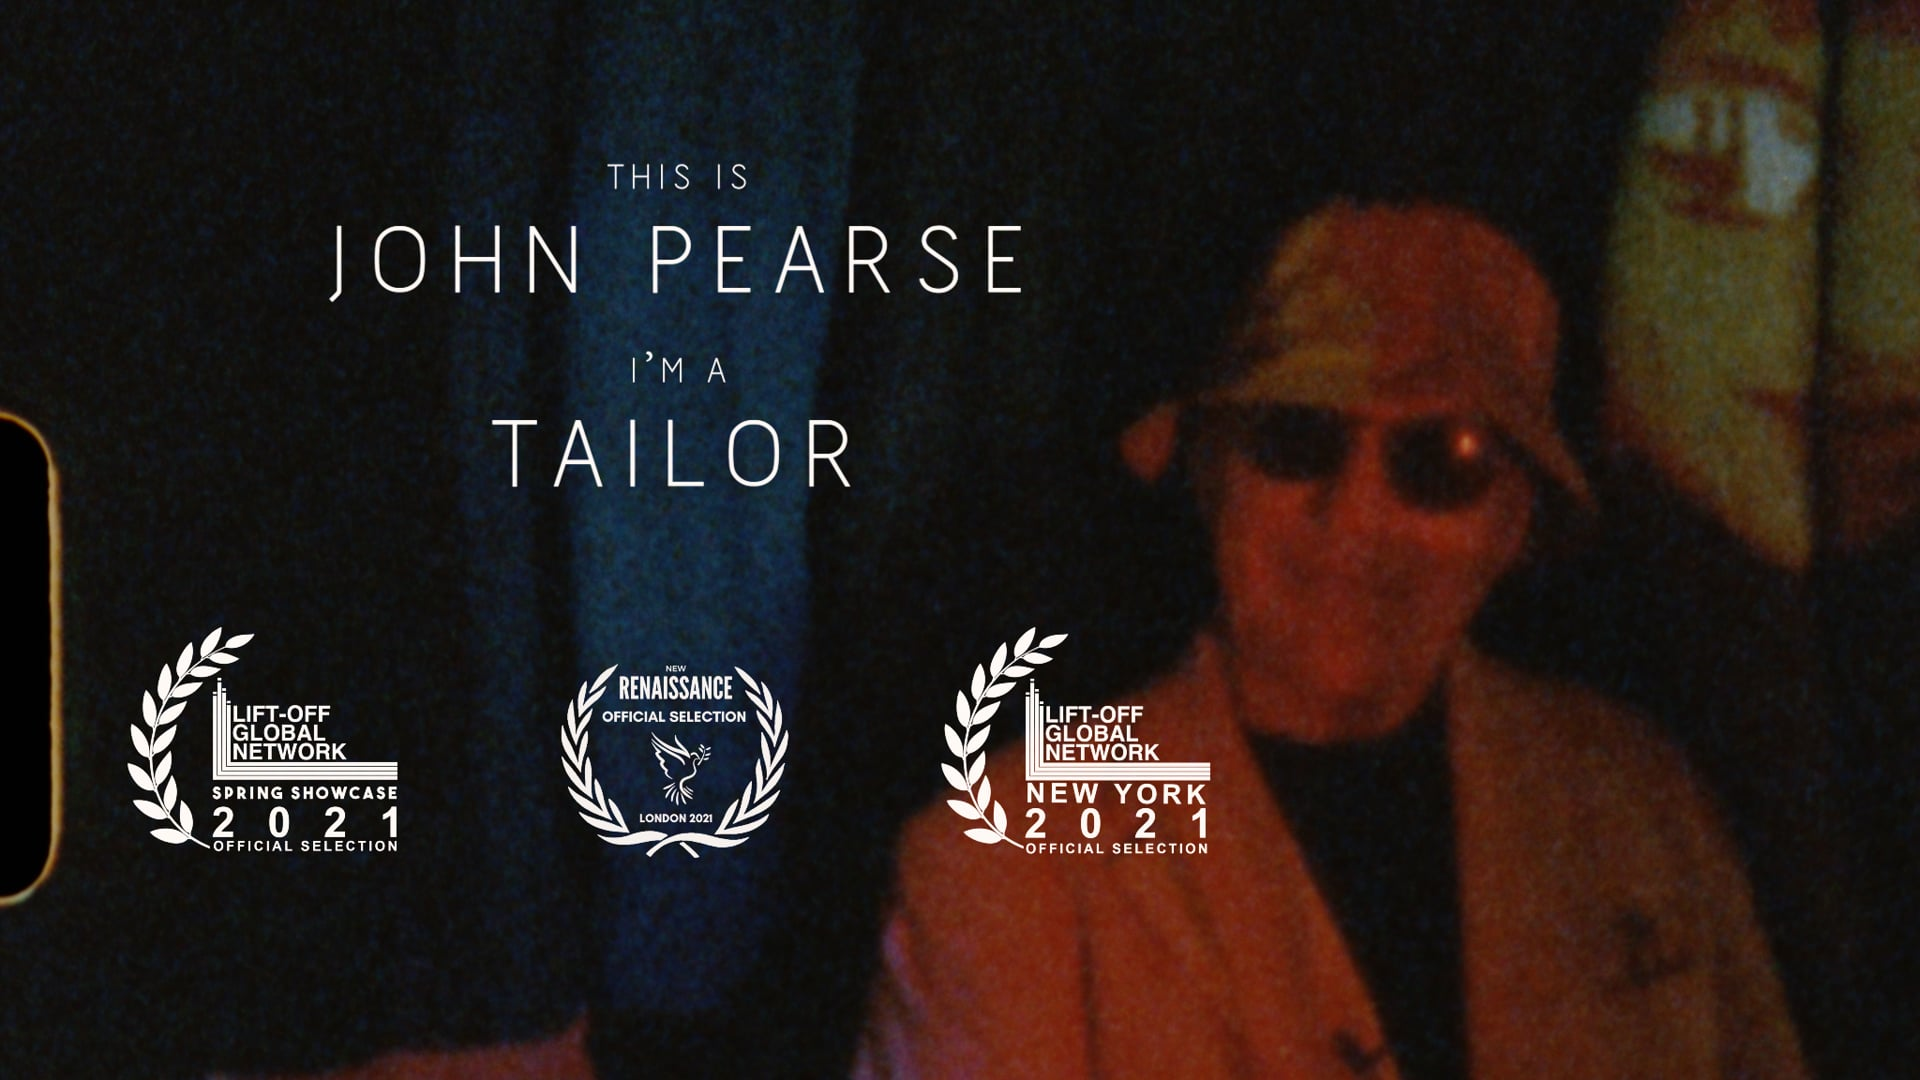 This is John Pearse, I'm a Tailor